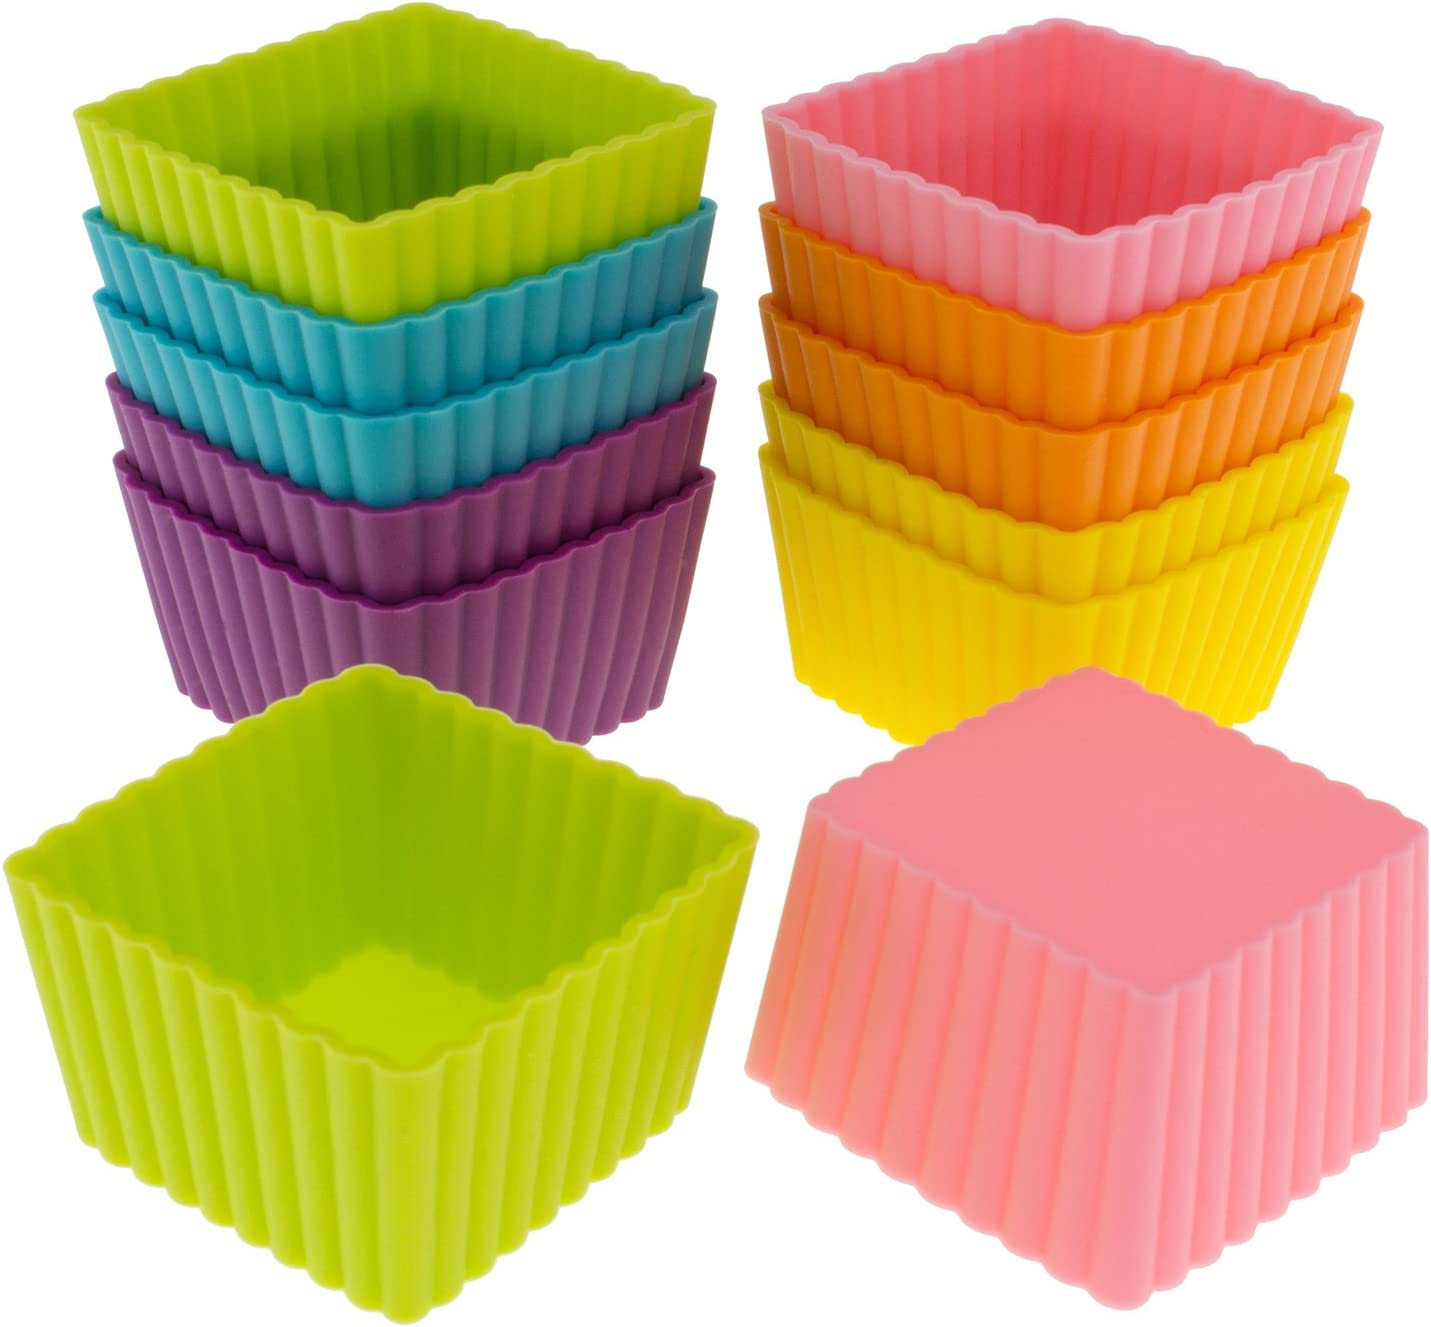 Freshware Silicone Baking Cups 12 Pack Reusable Cupcake Liners Non Stick Muffin Cups Cake Molds Cupcake Holder In 6 Rainbow Colors Mini Square Kitchen Dining